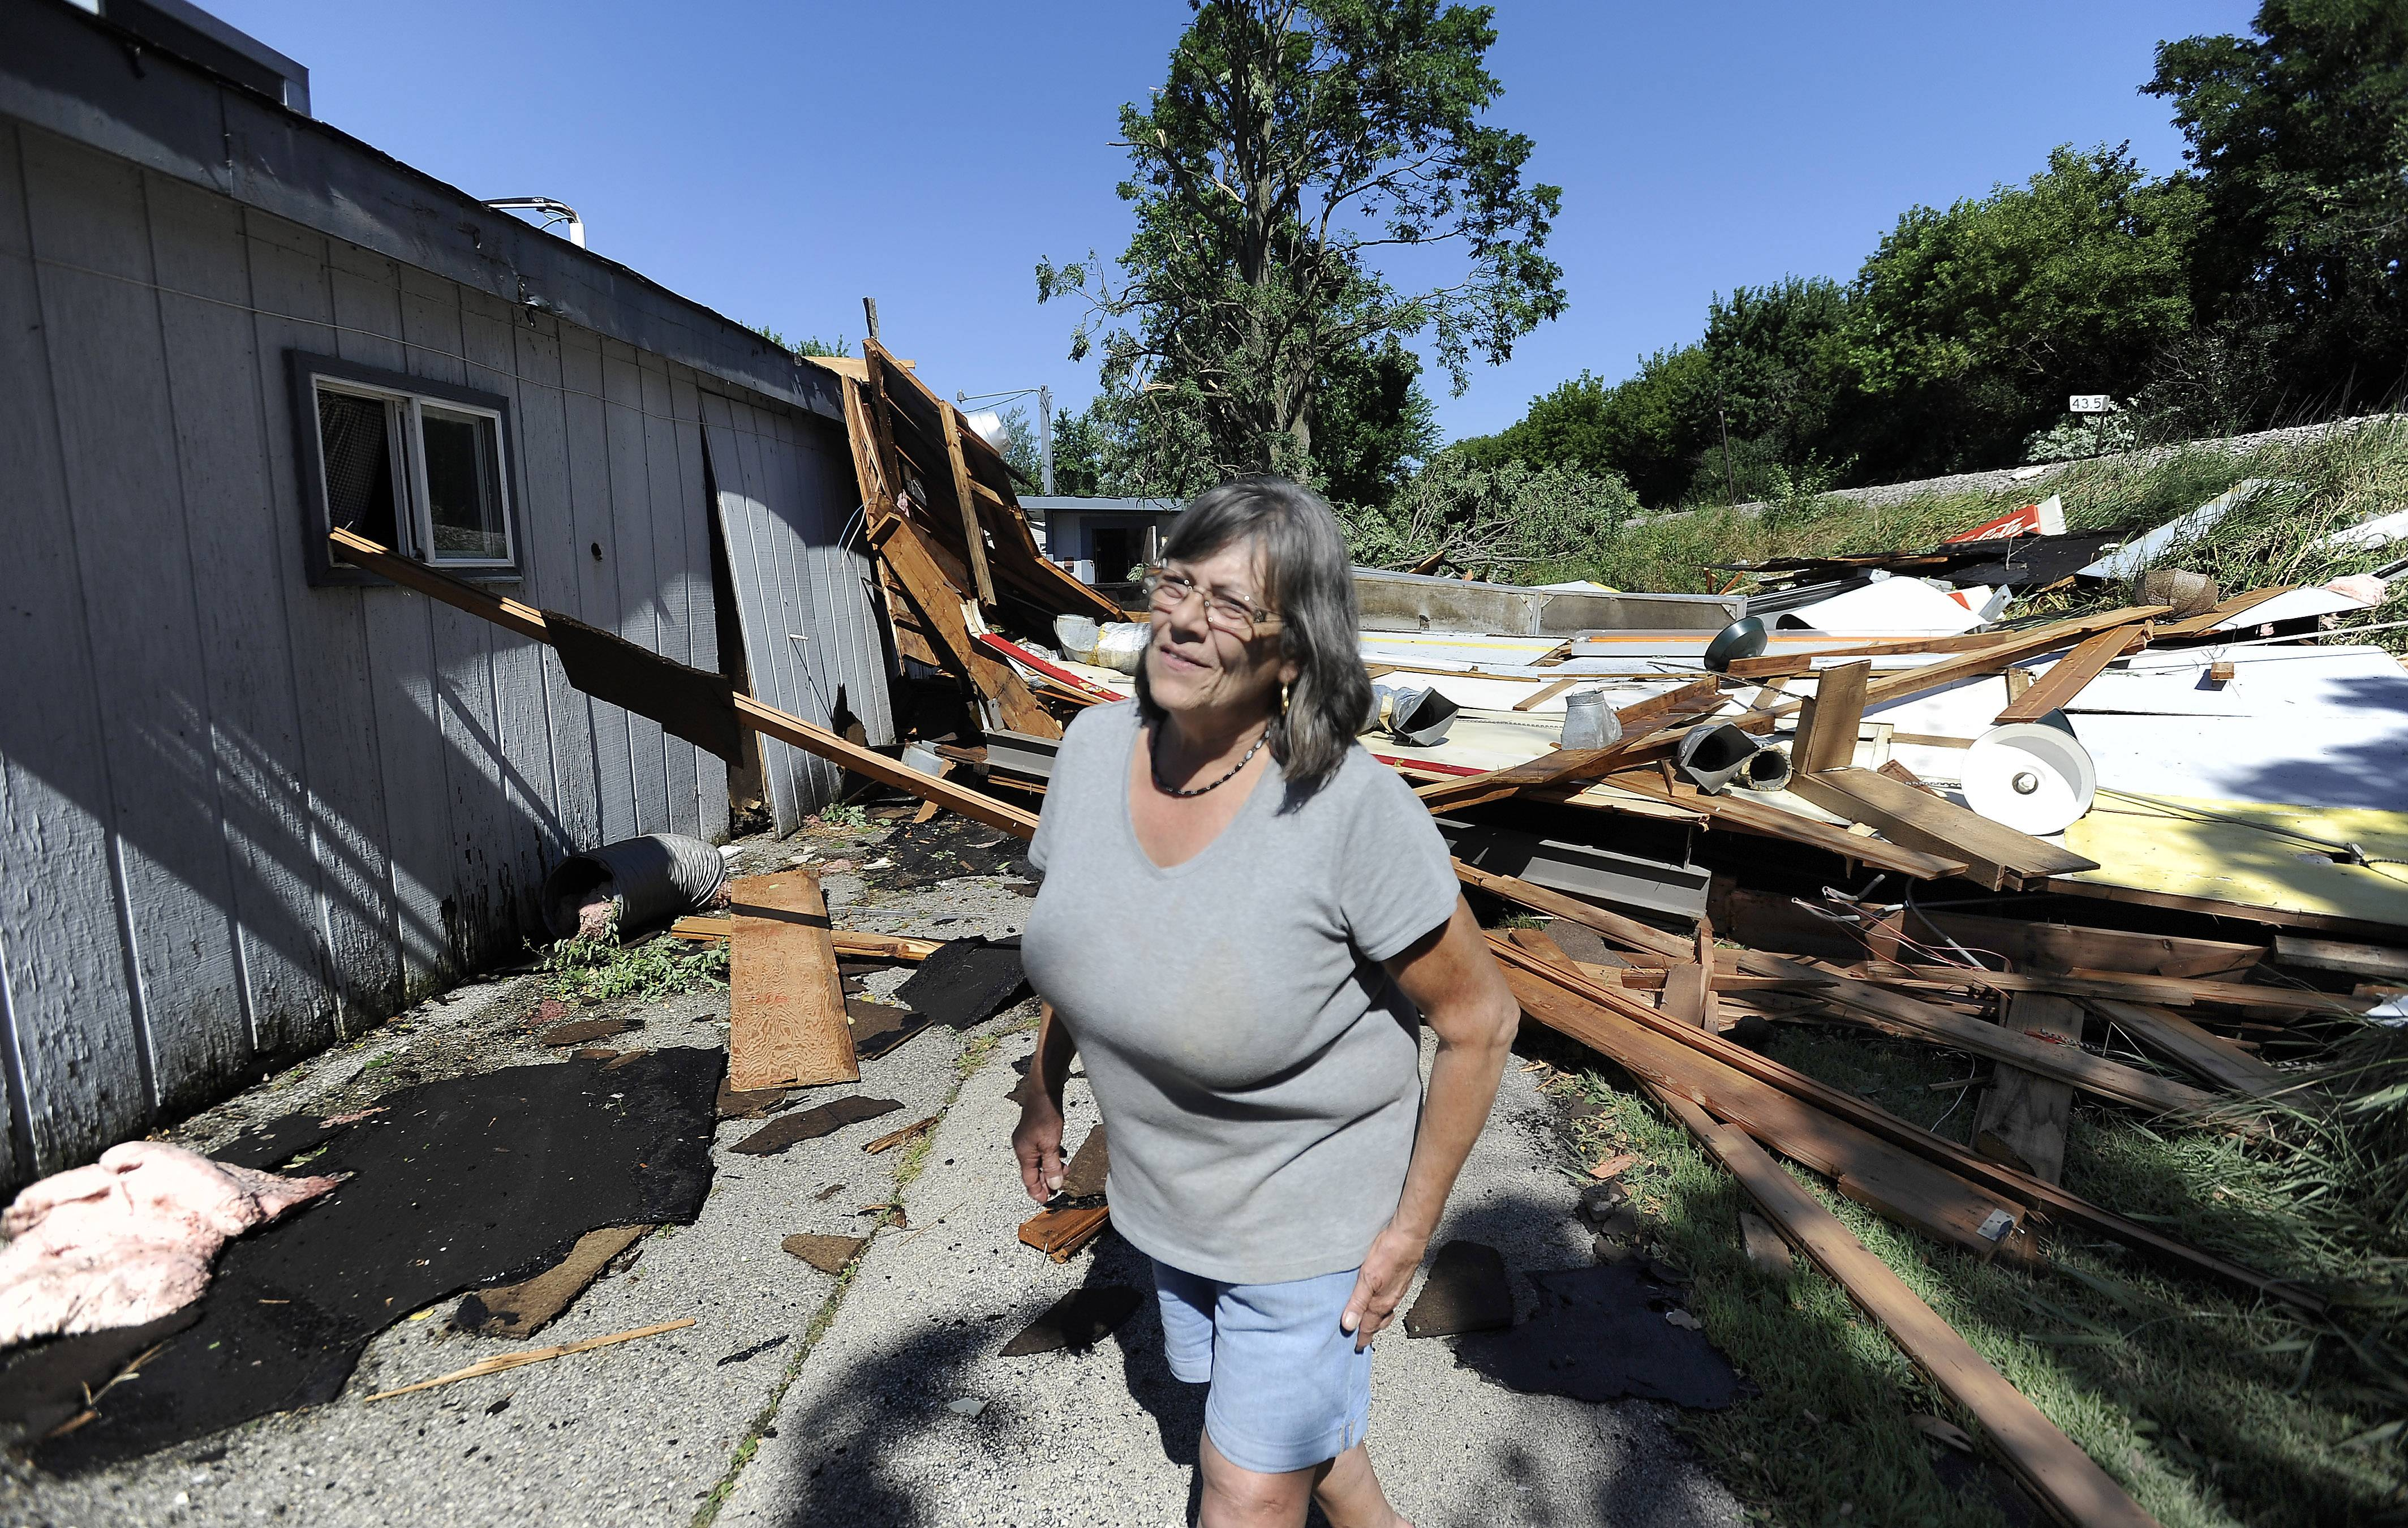 Owner Jean McCue of the Pizza Place in Round Lake Park waits for her insurance person as she looks over the damage to her place after a tornado came through about 8:30 p.m. on Sunday.